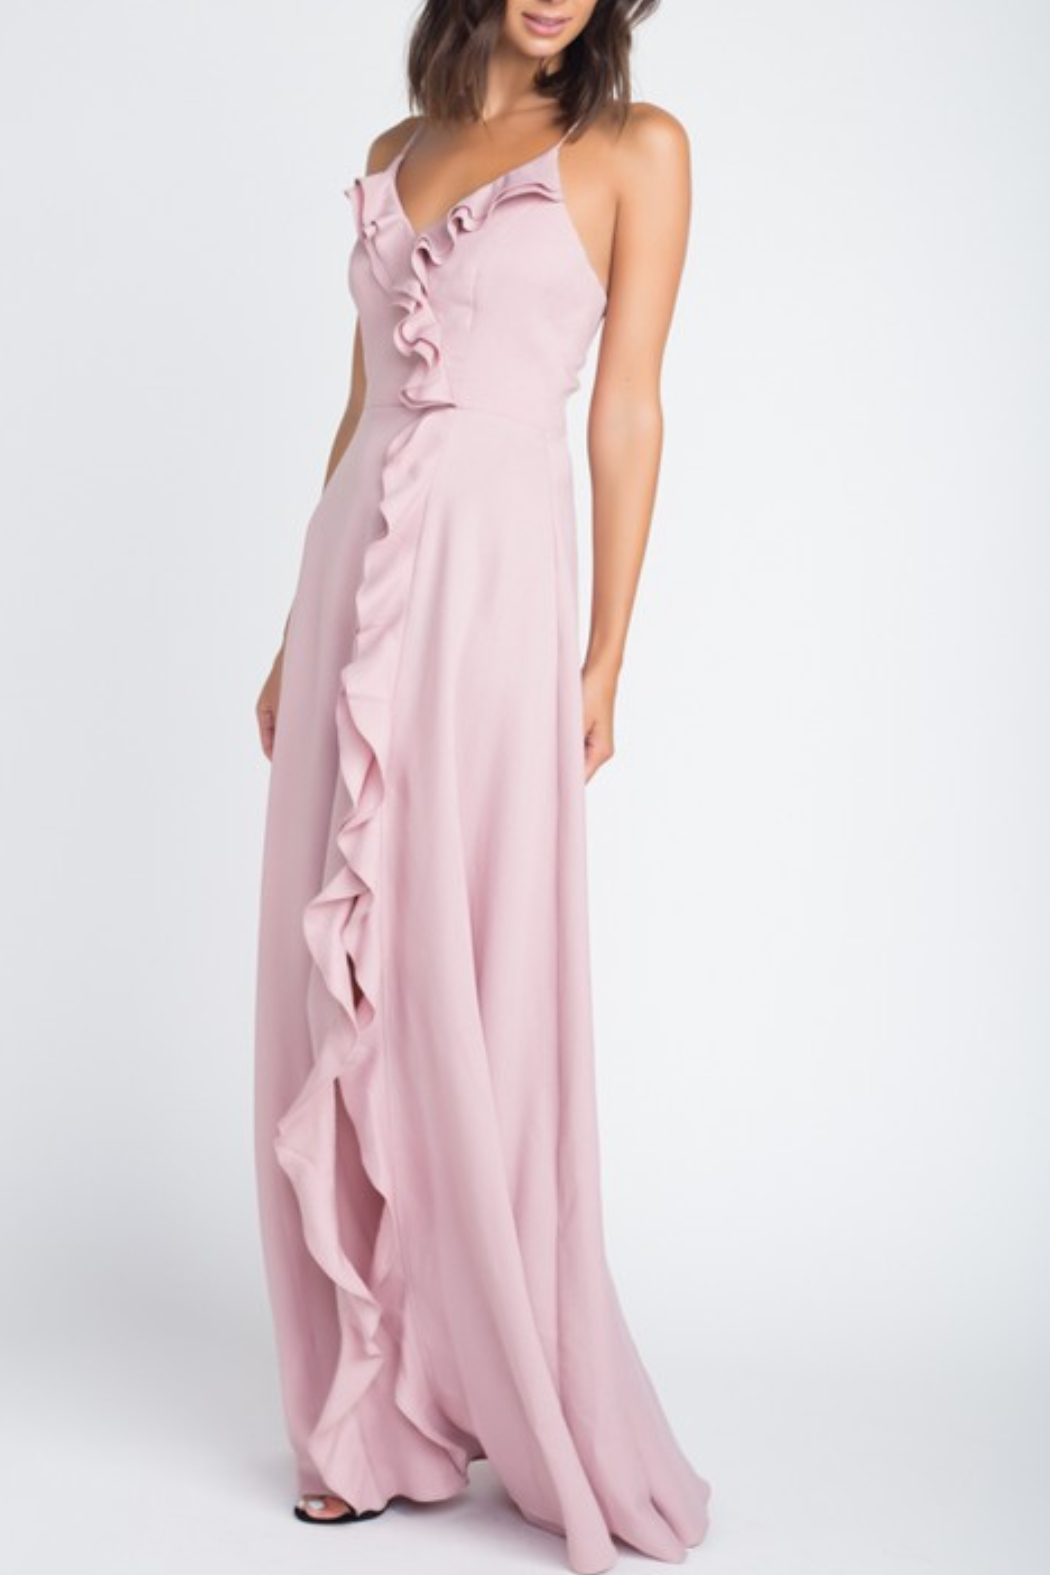 Minuet Ruffle Detail Gown - Main Image